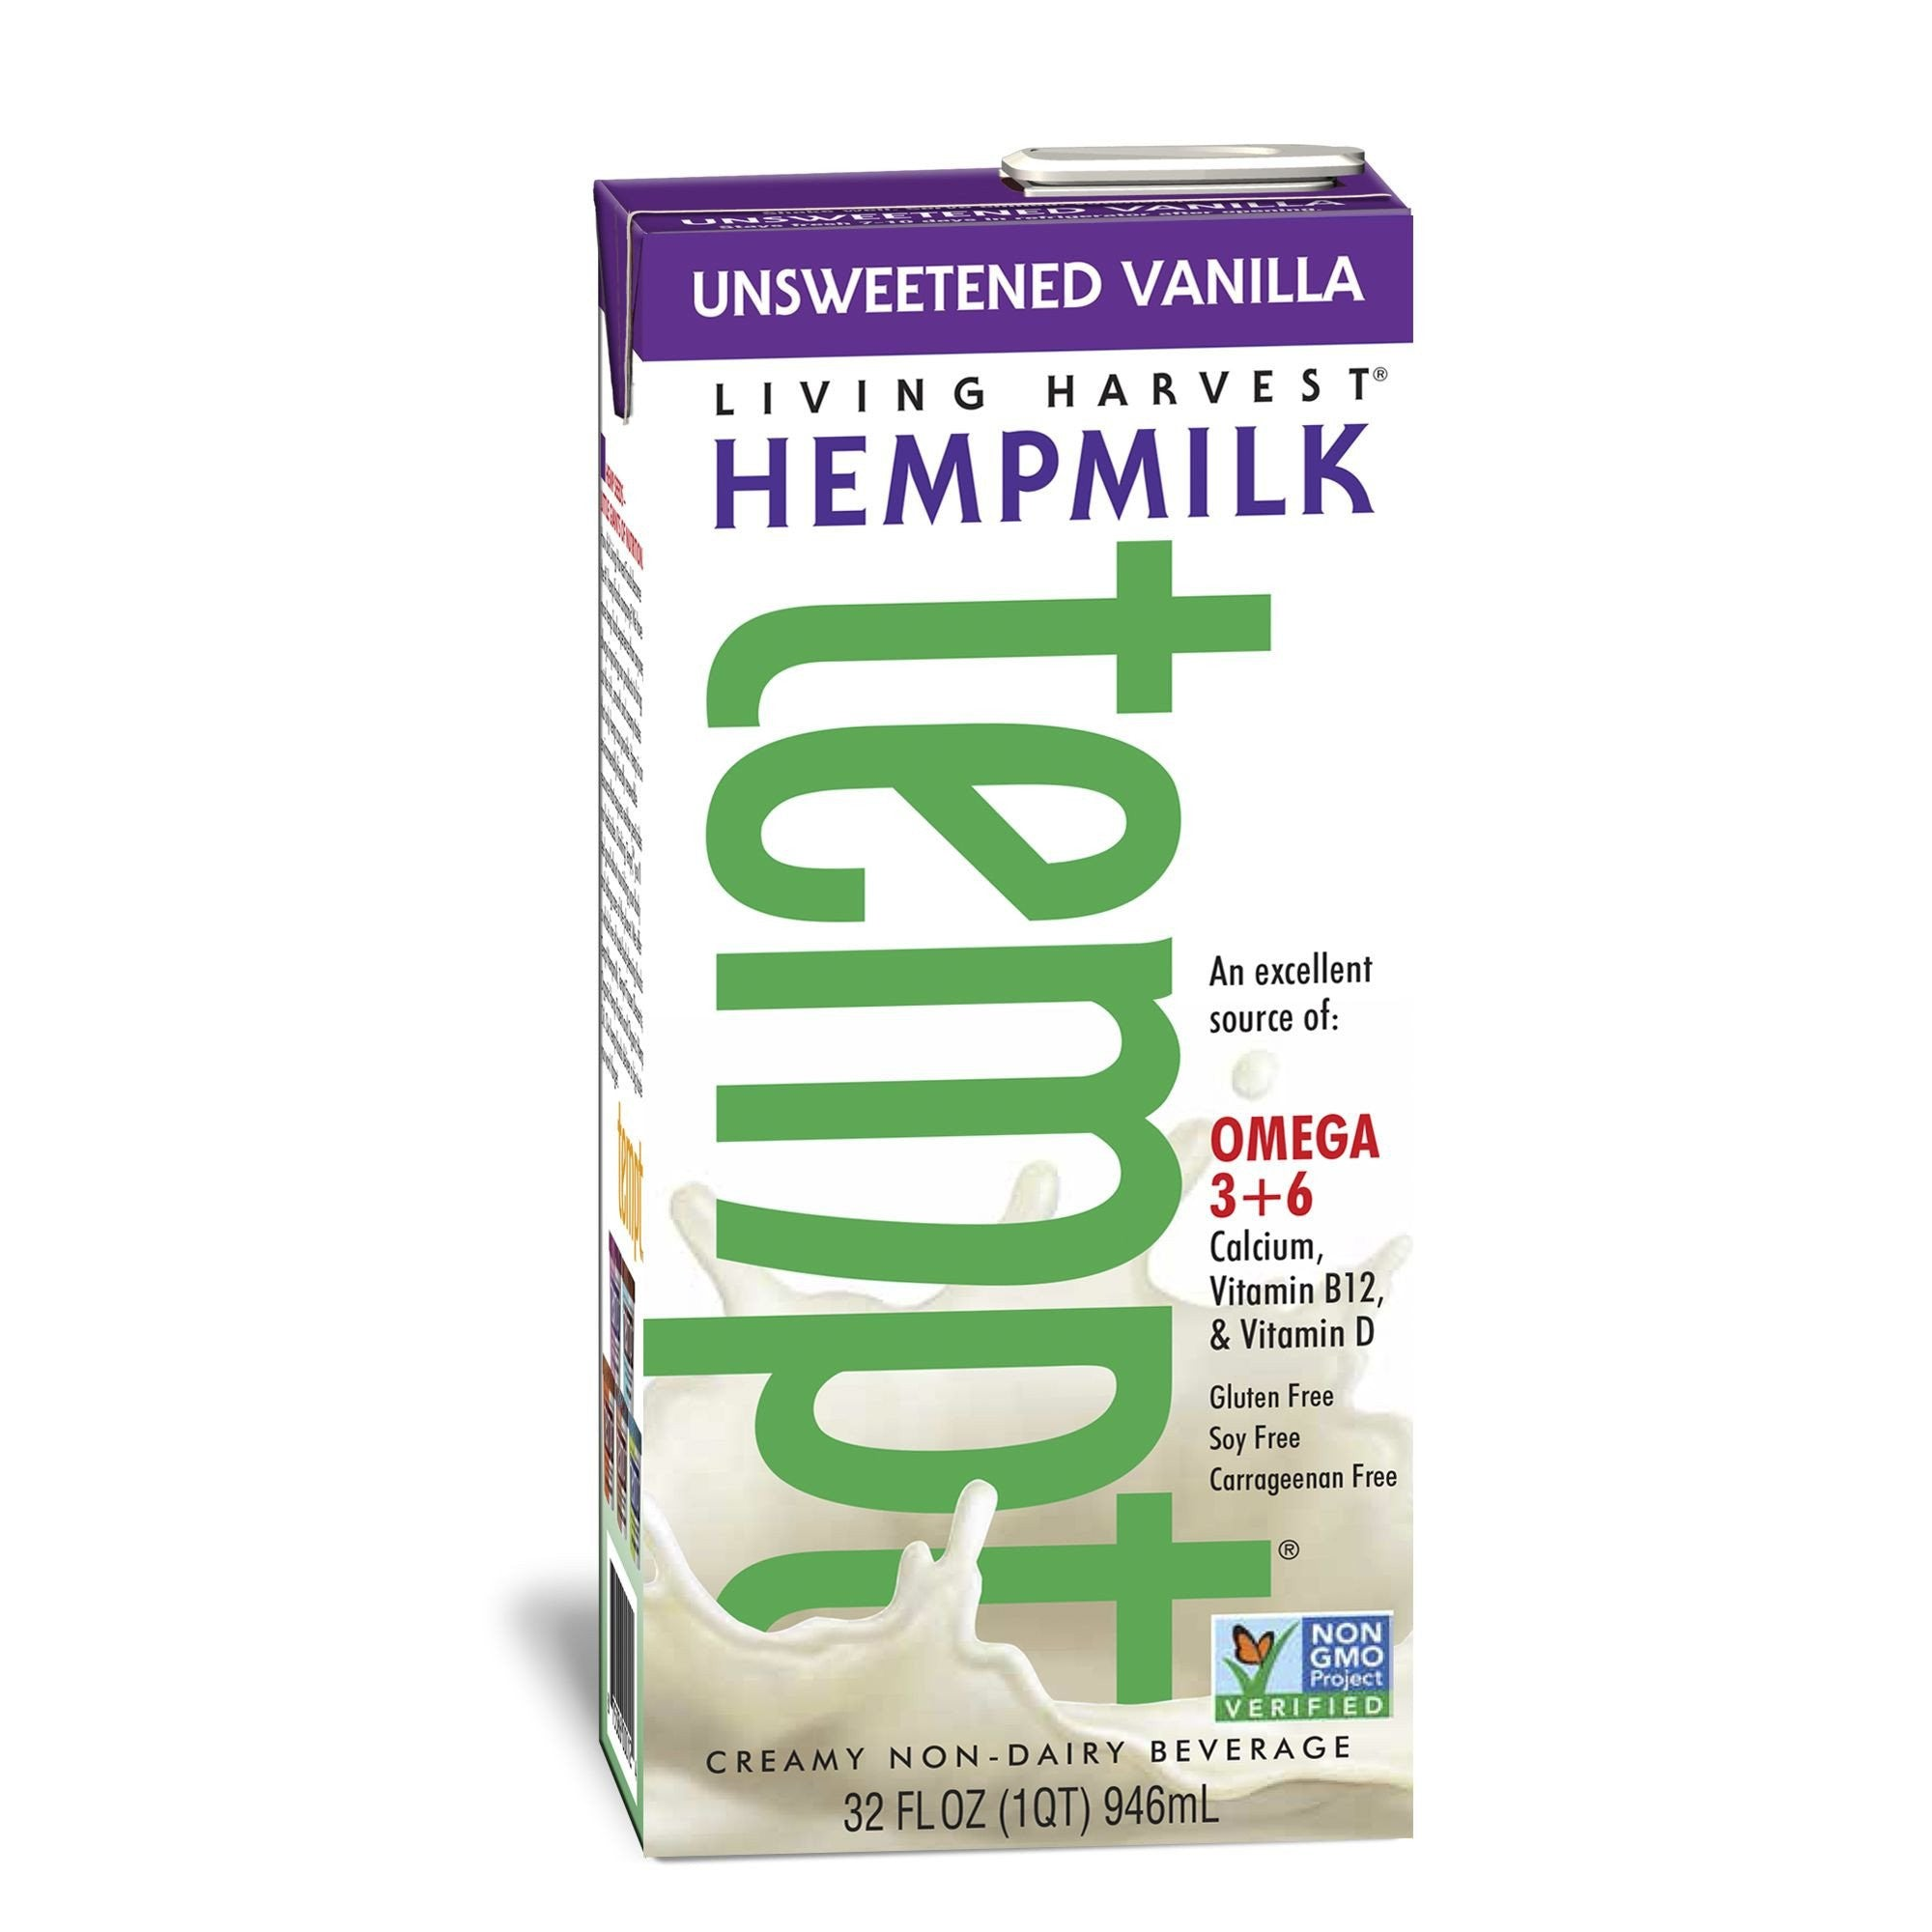 Living Harvest Hempmilk Unsweetened Vanilla Flavor, 32 Oz (Pack of 12)